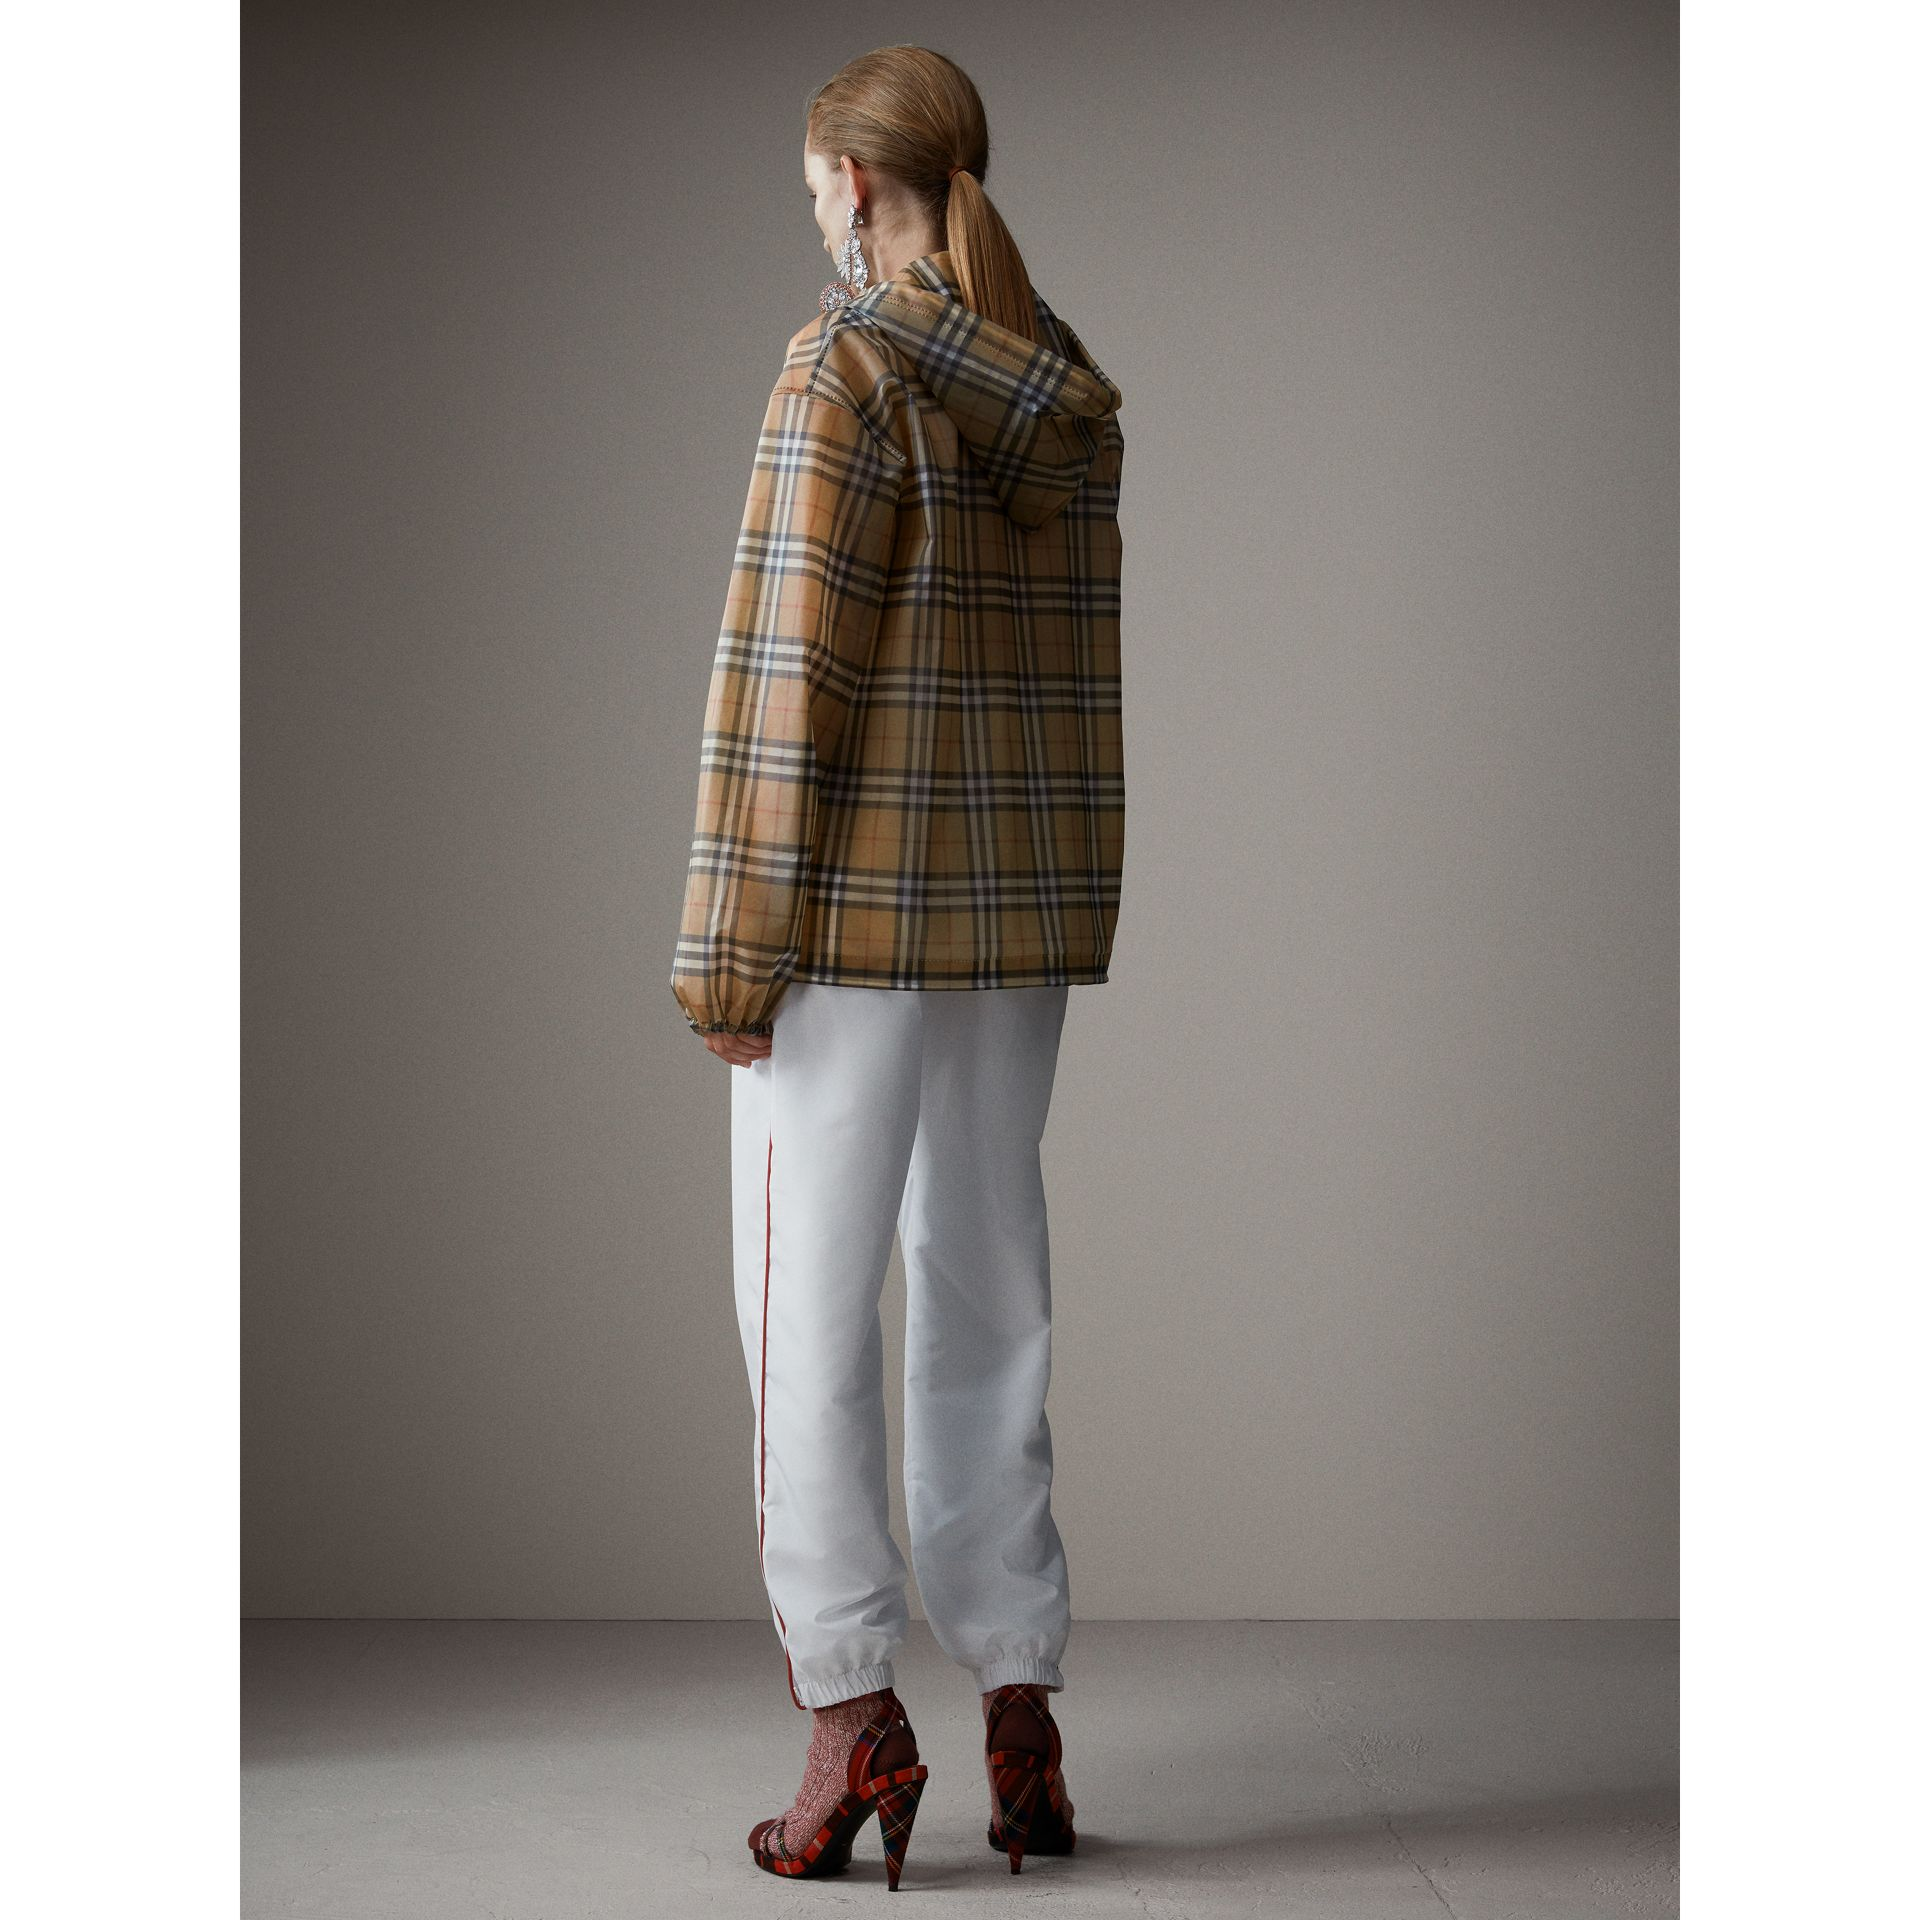 Vintage Check Soft-touch Plastic Cagoule in Antique Yellow - Women | Burberry - gallery image 2